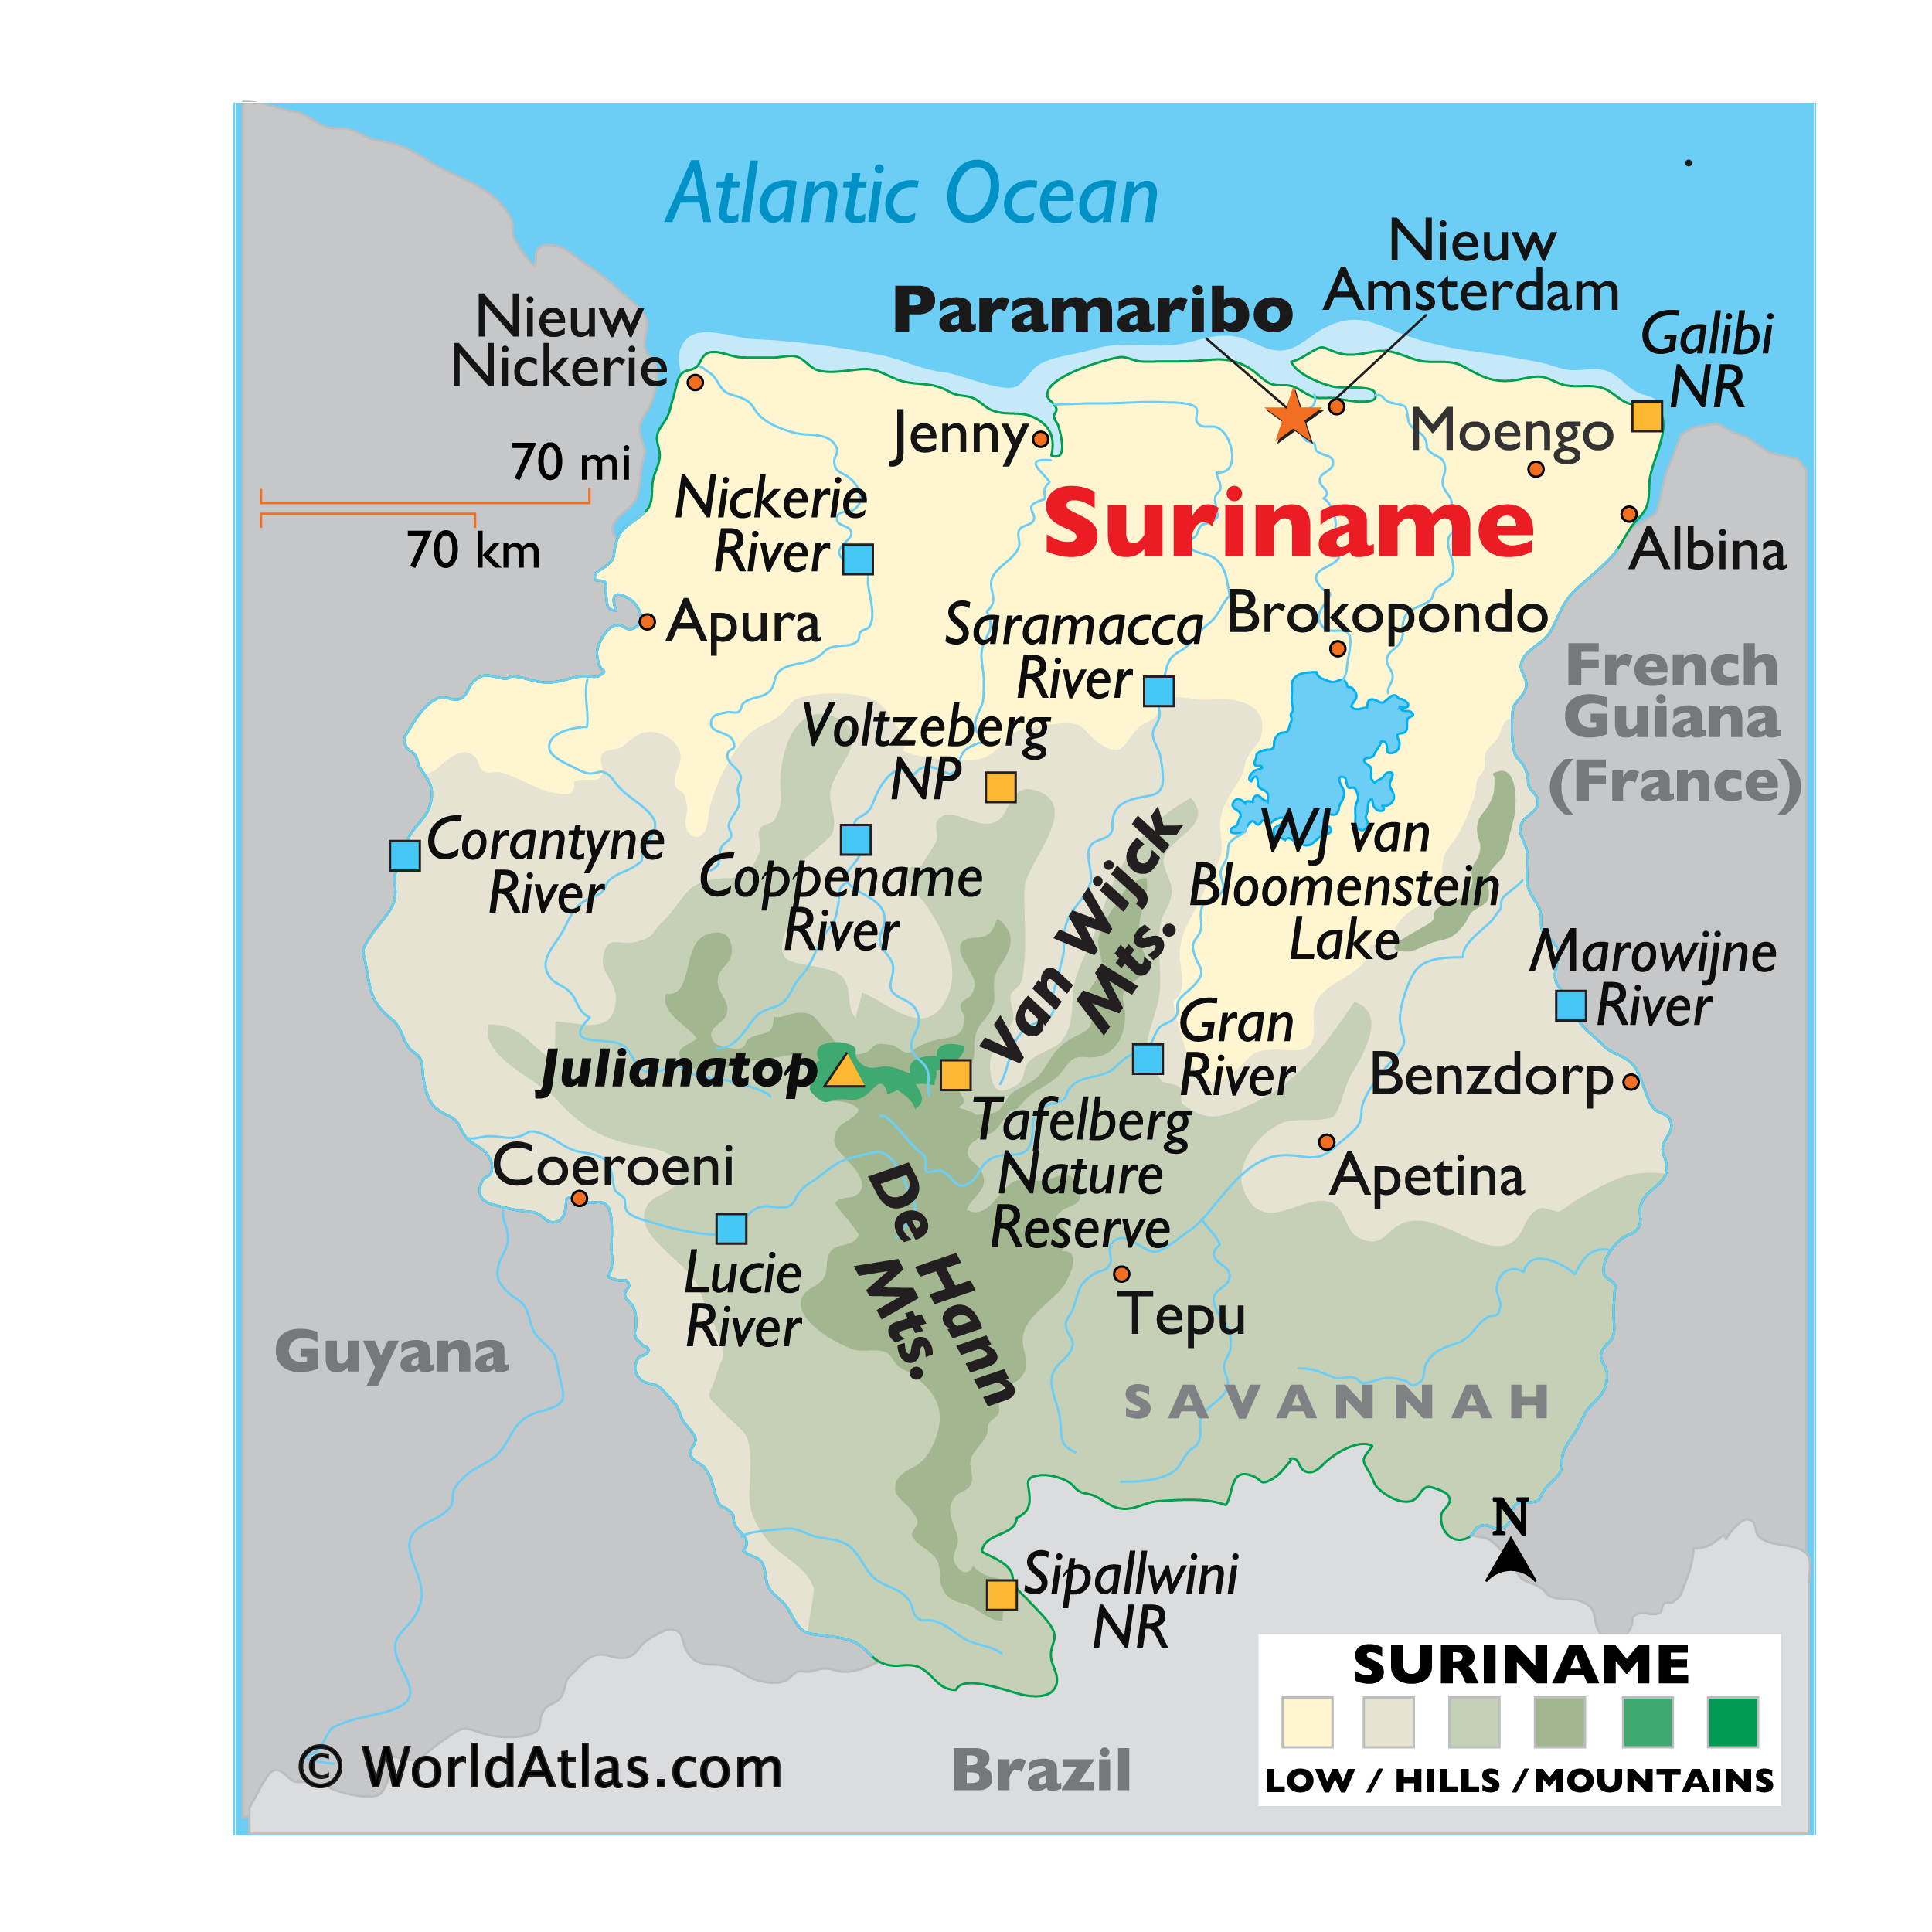 Physical Map of Suriname showing relief, mountain ranges, the WJ van Bloomenstein Lake, important rivers, protected areas, and more.